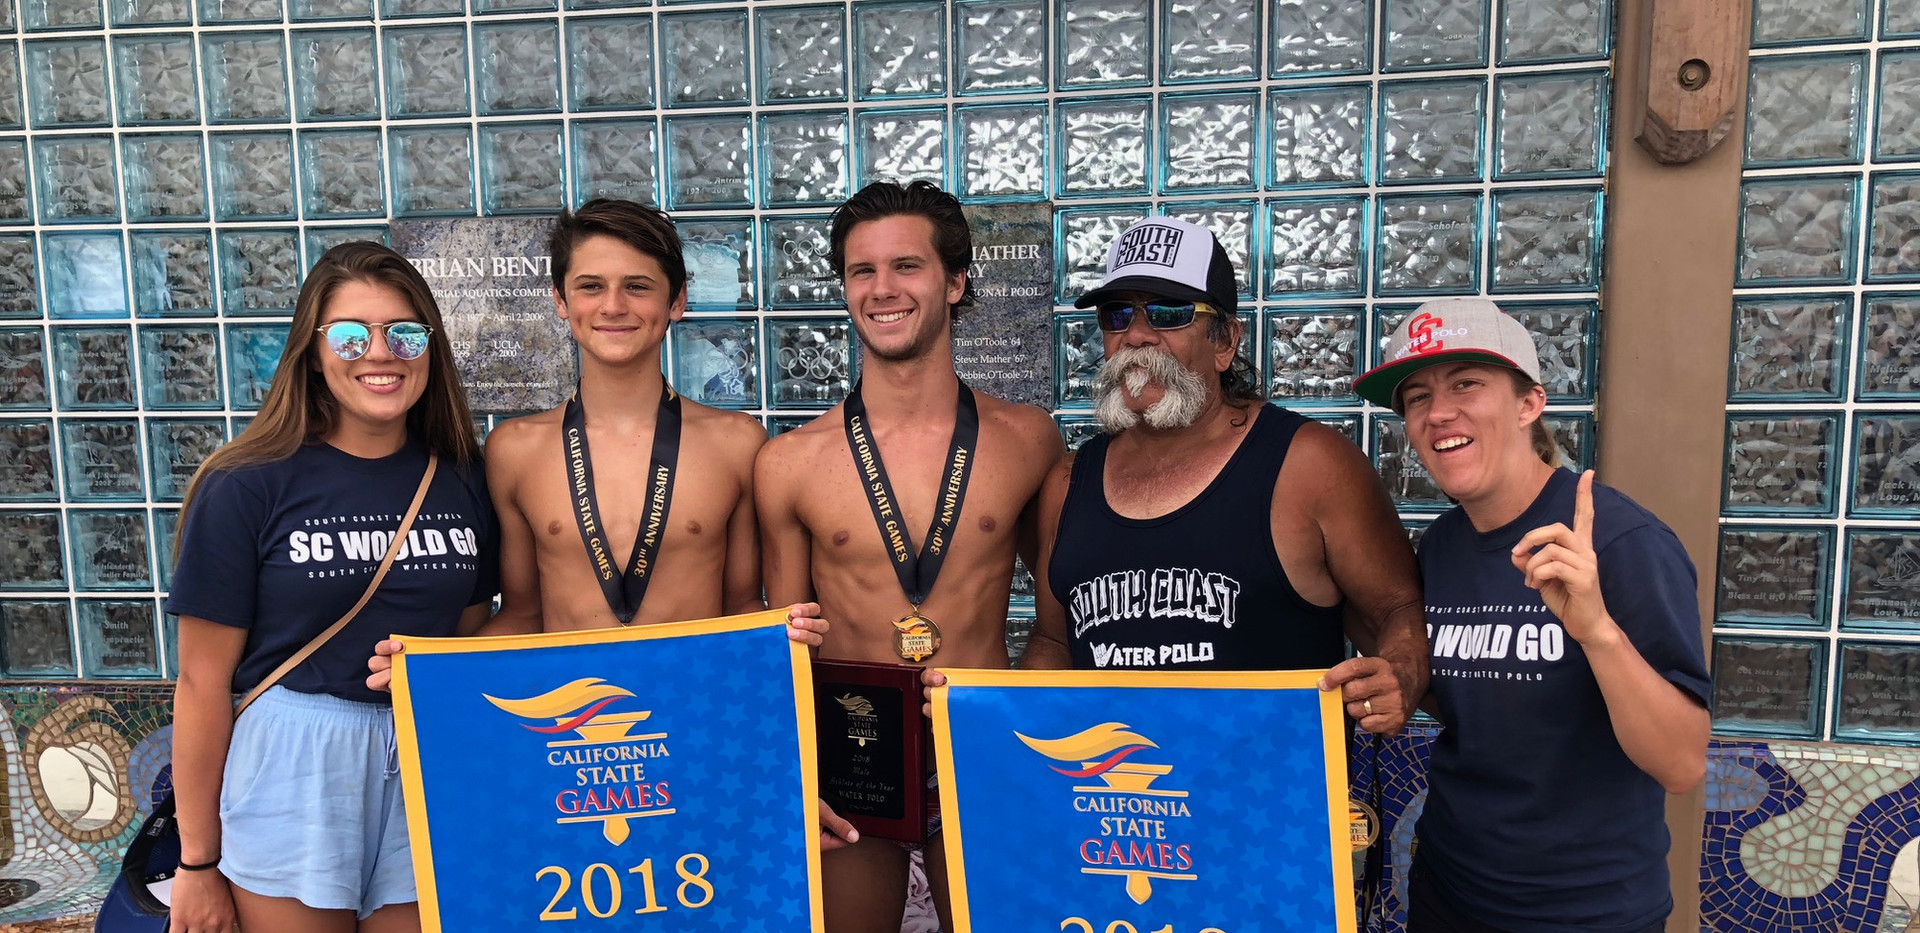 Cal State Champions 2018